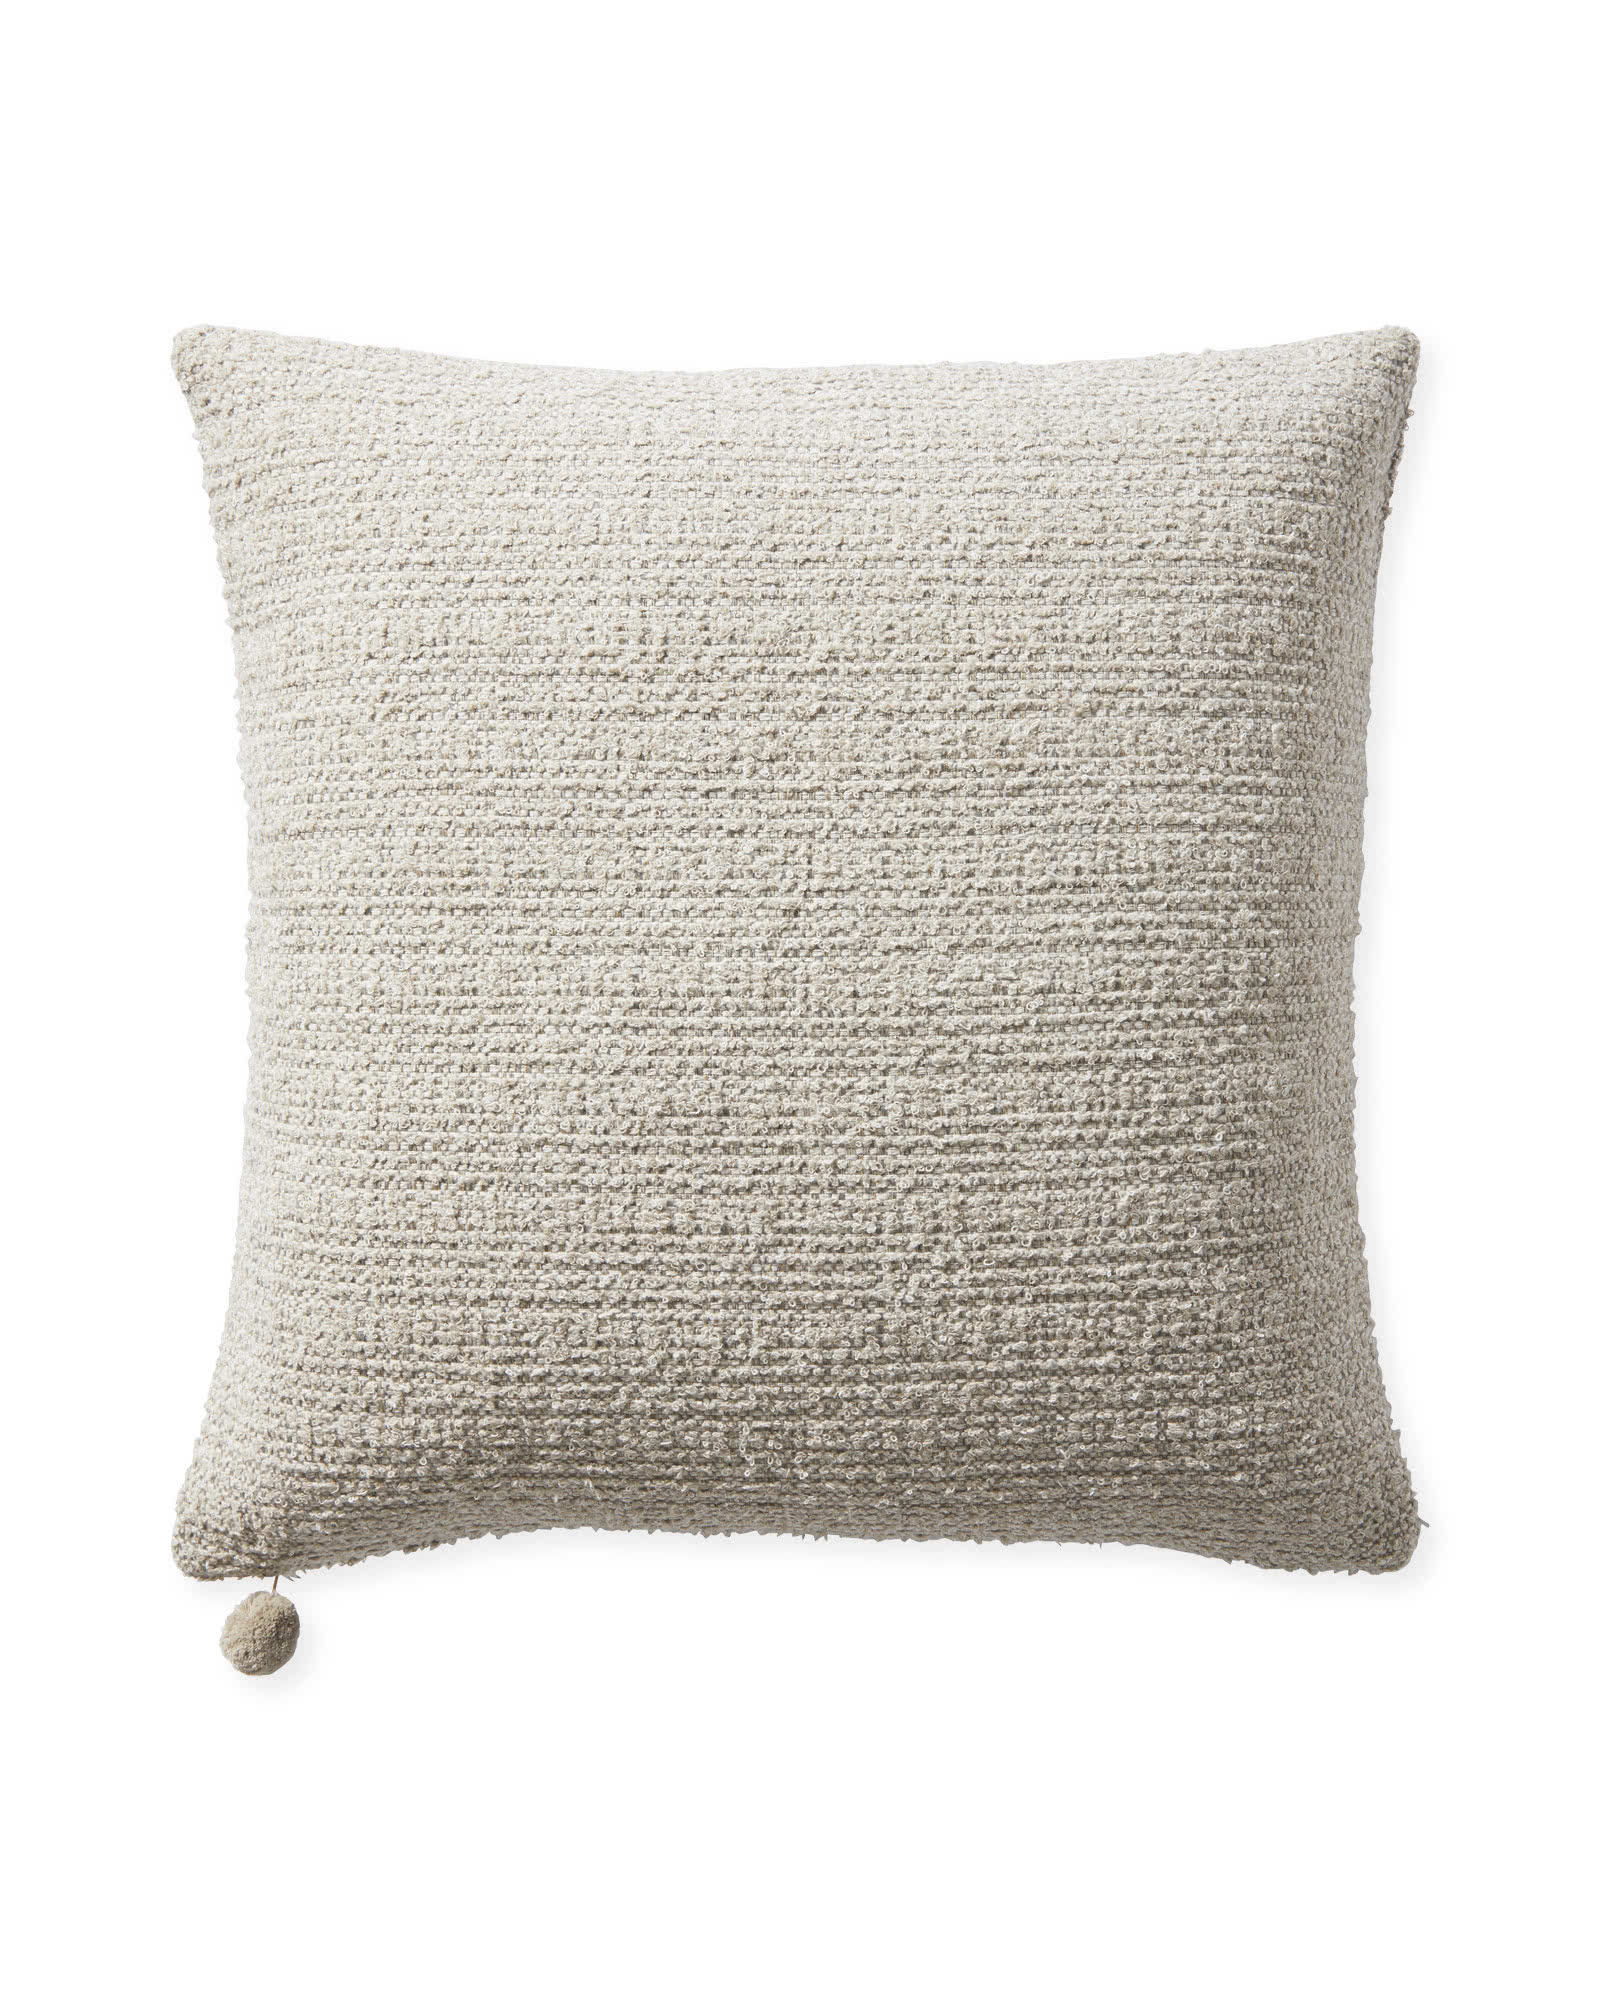 Perennials® Textured Loop Pillow Cover, Sand